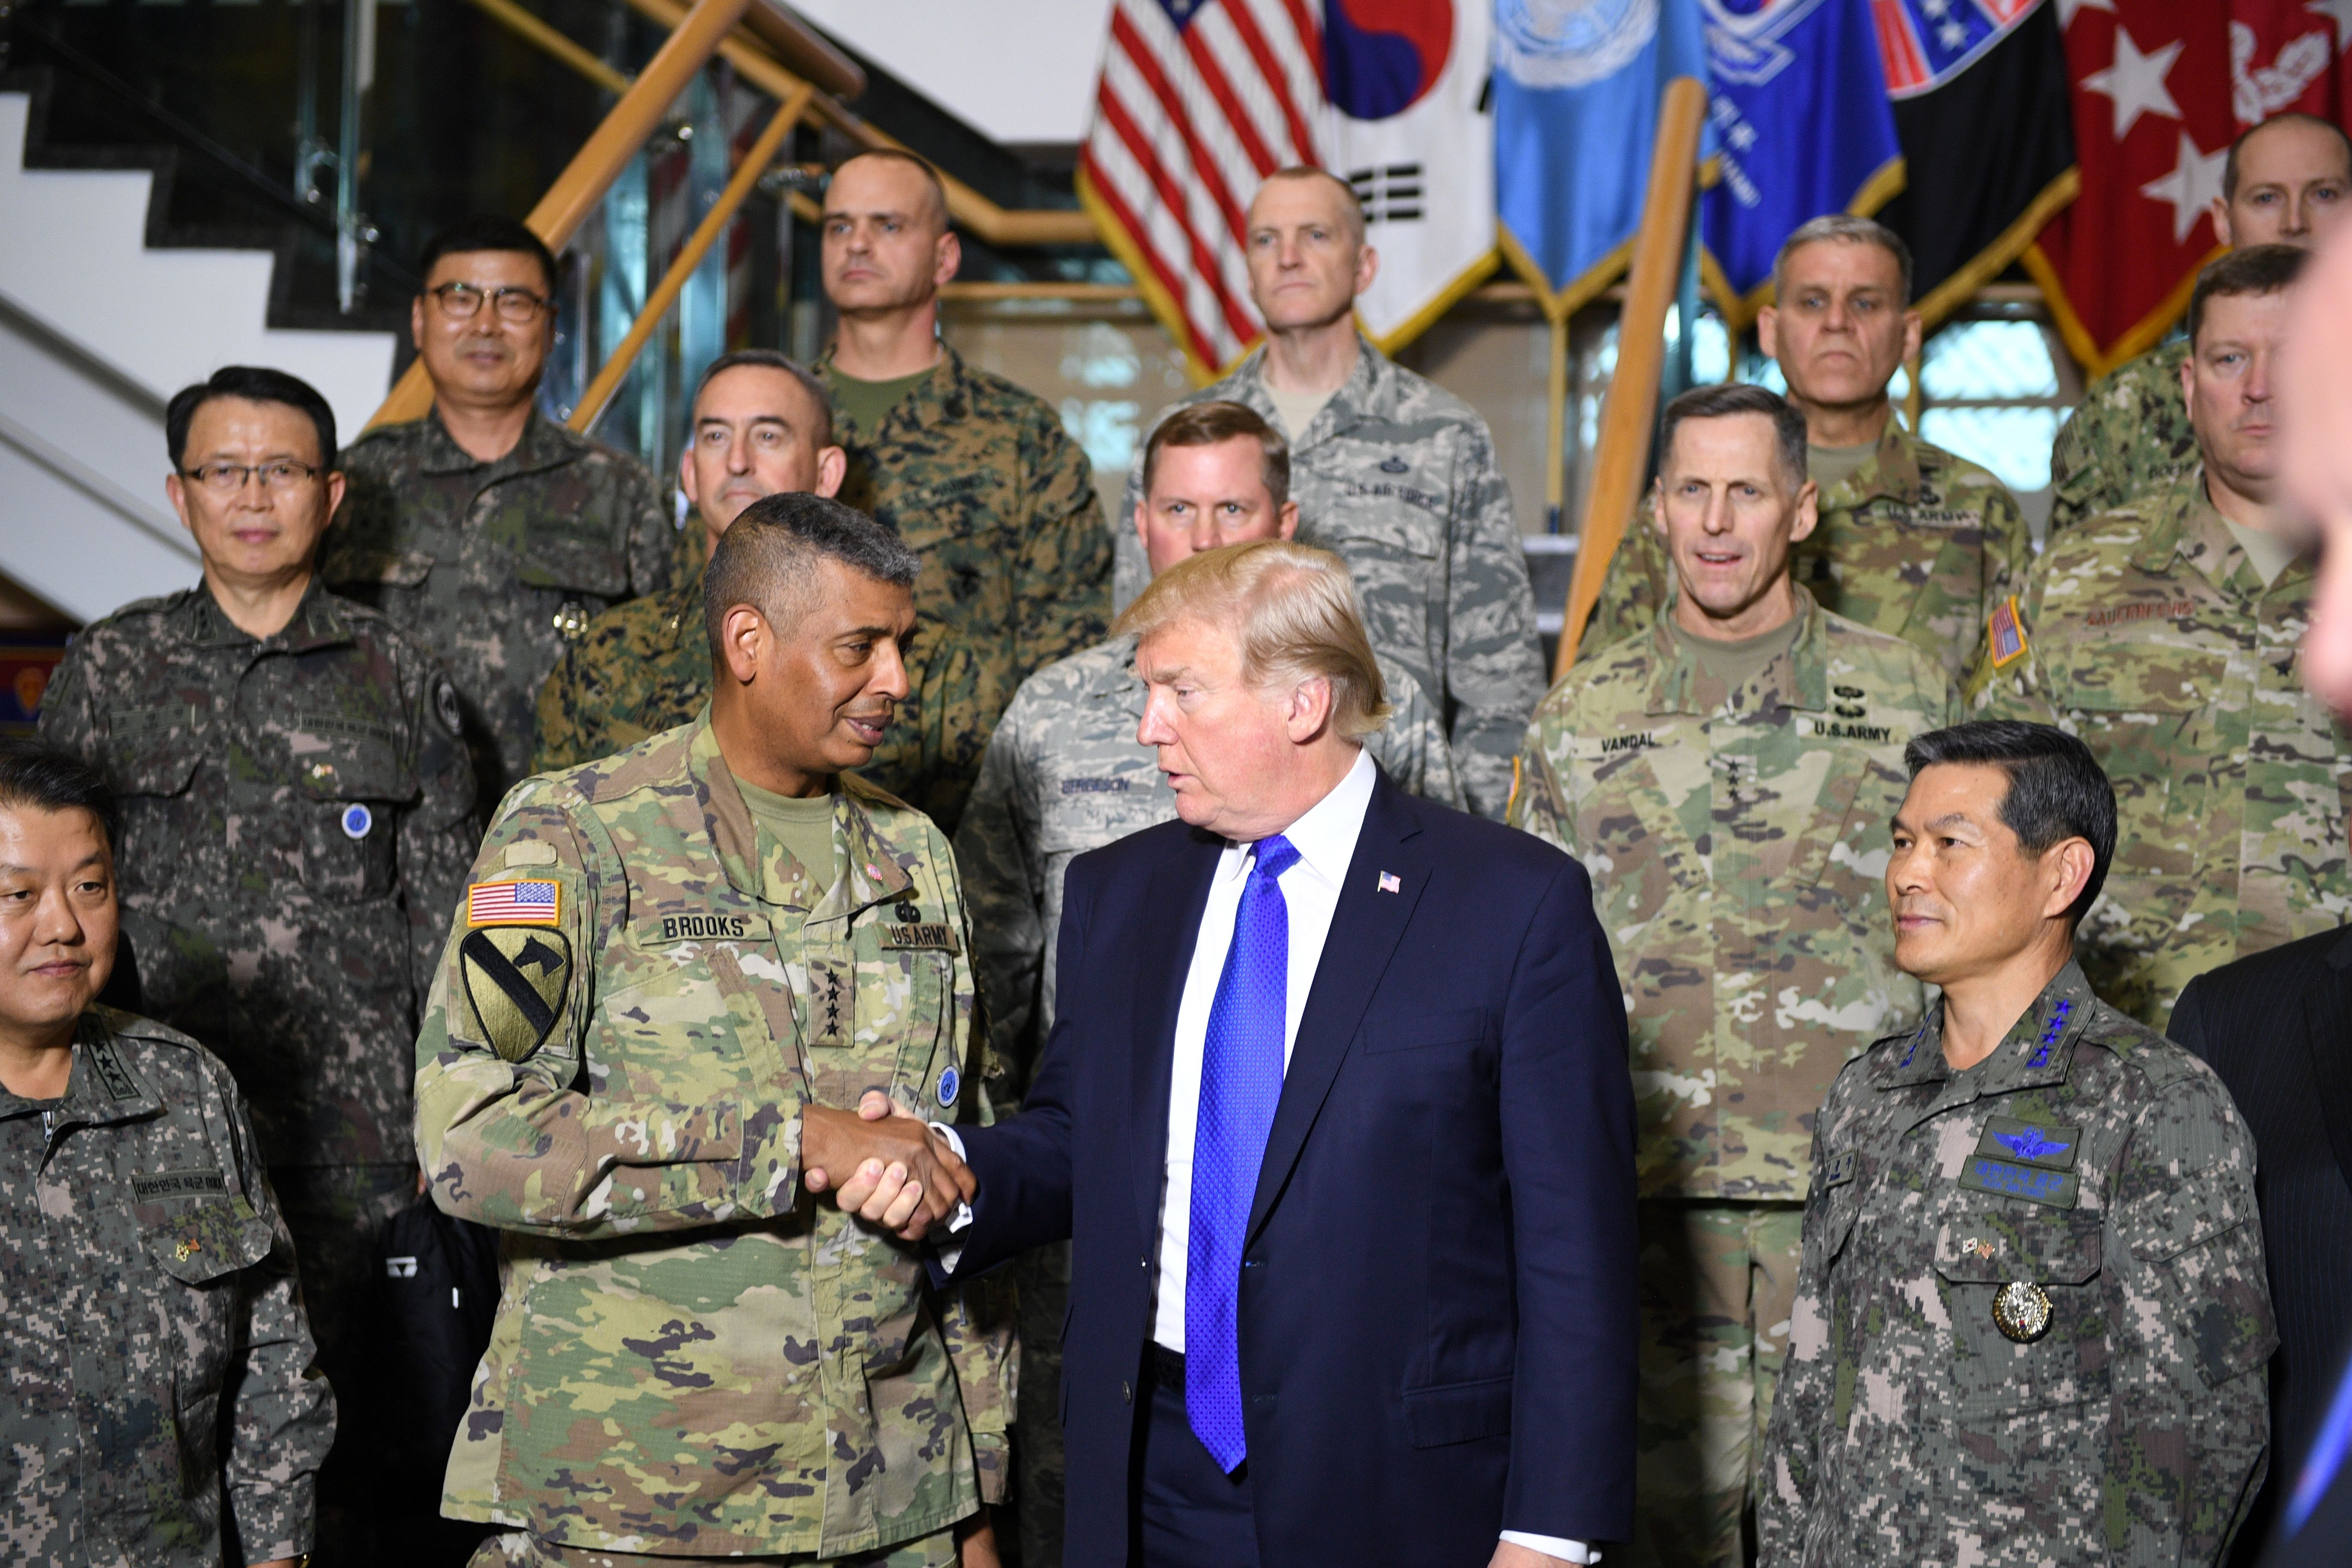 US President Donald Trump shakes hands with US Forces Korea Commander General Vincent Brooks at the 8th Army Operational Command Centre at Camp Humphreys in Pyeongtaek, south of Seoul on November 7, 2017. Trump's marathon Asia tour moves to South Korea, another key ally in the struggle with nuclear-armed North Korea, but one with deep reservations about the US president's strategy for dealing with the crisis. JIM WATSON/AFP/Getty Images